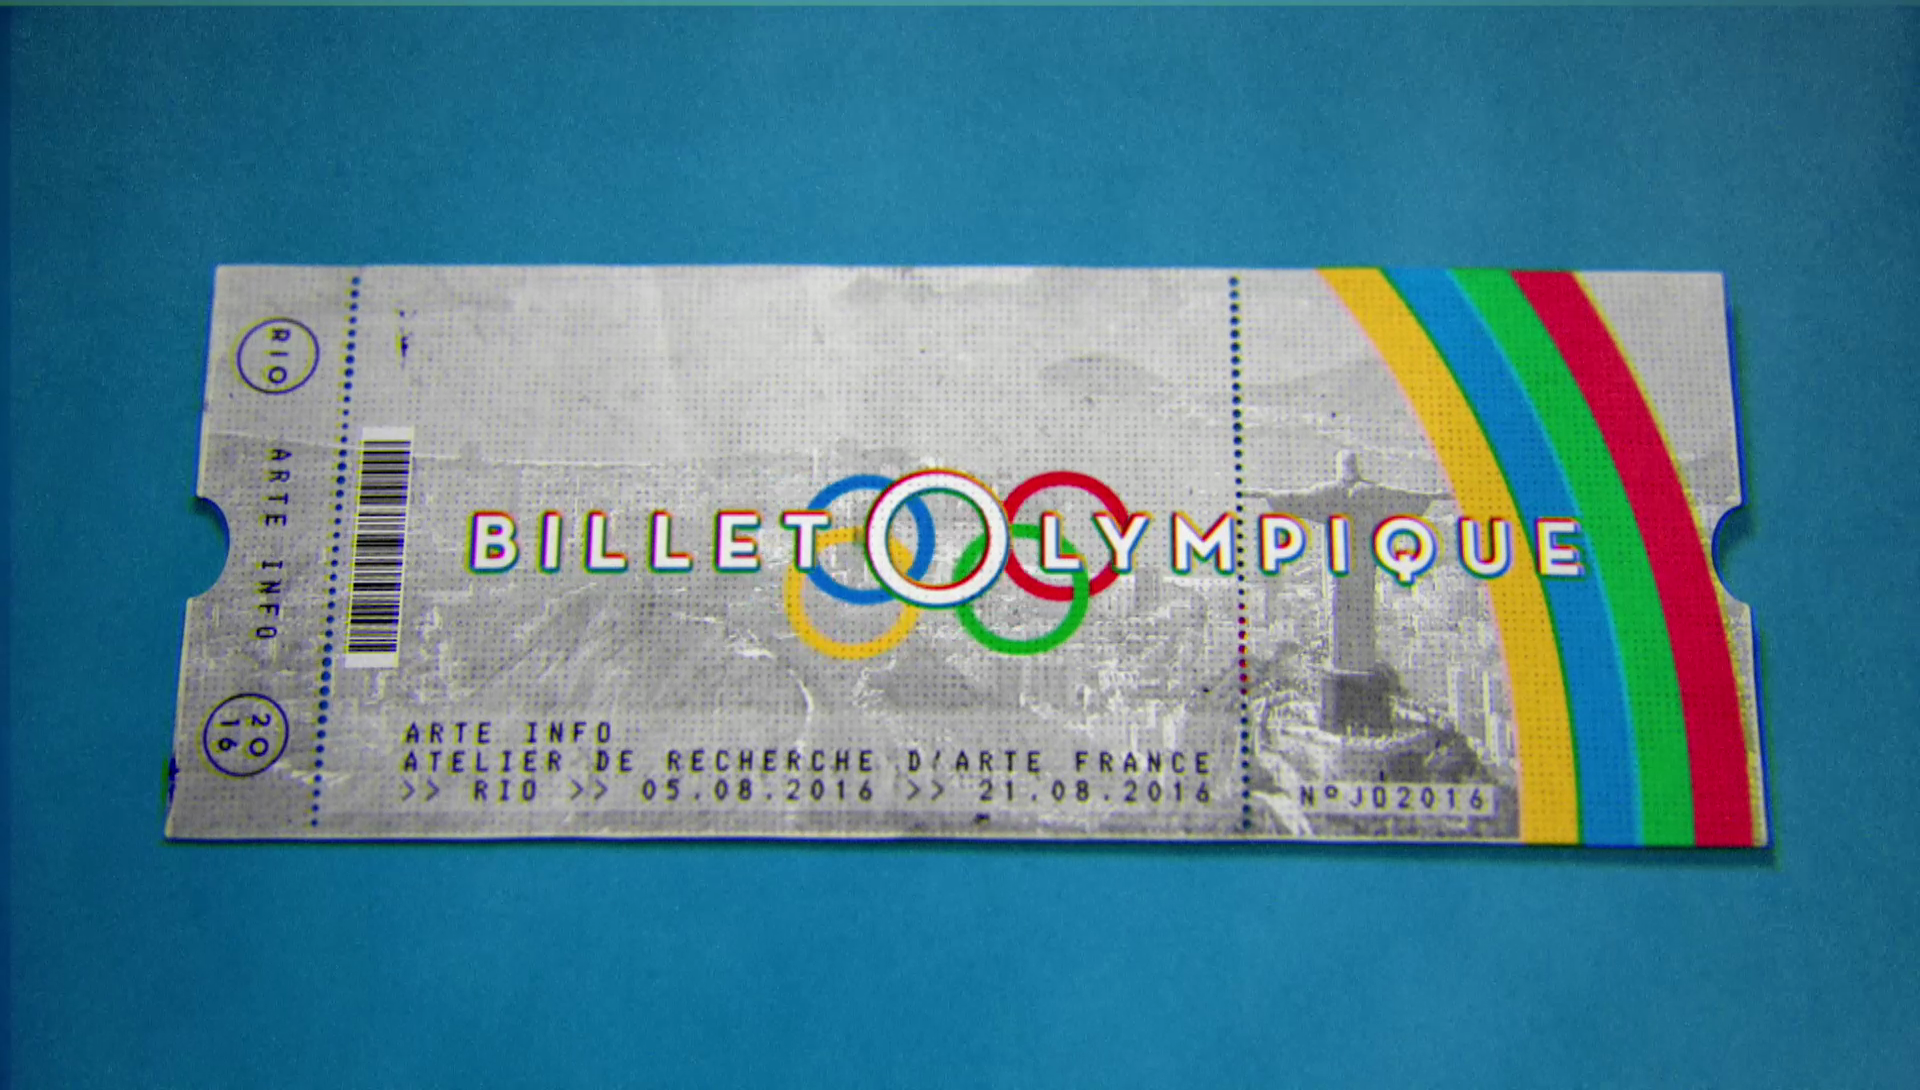 Billet olympique